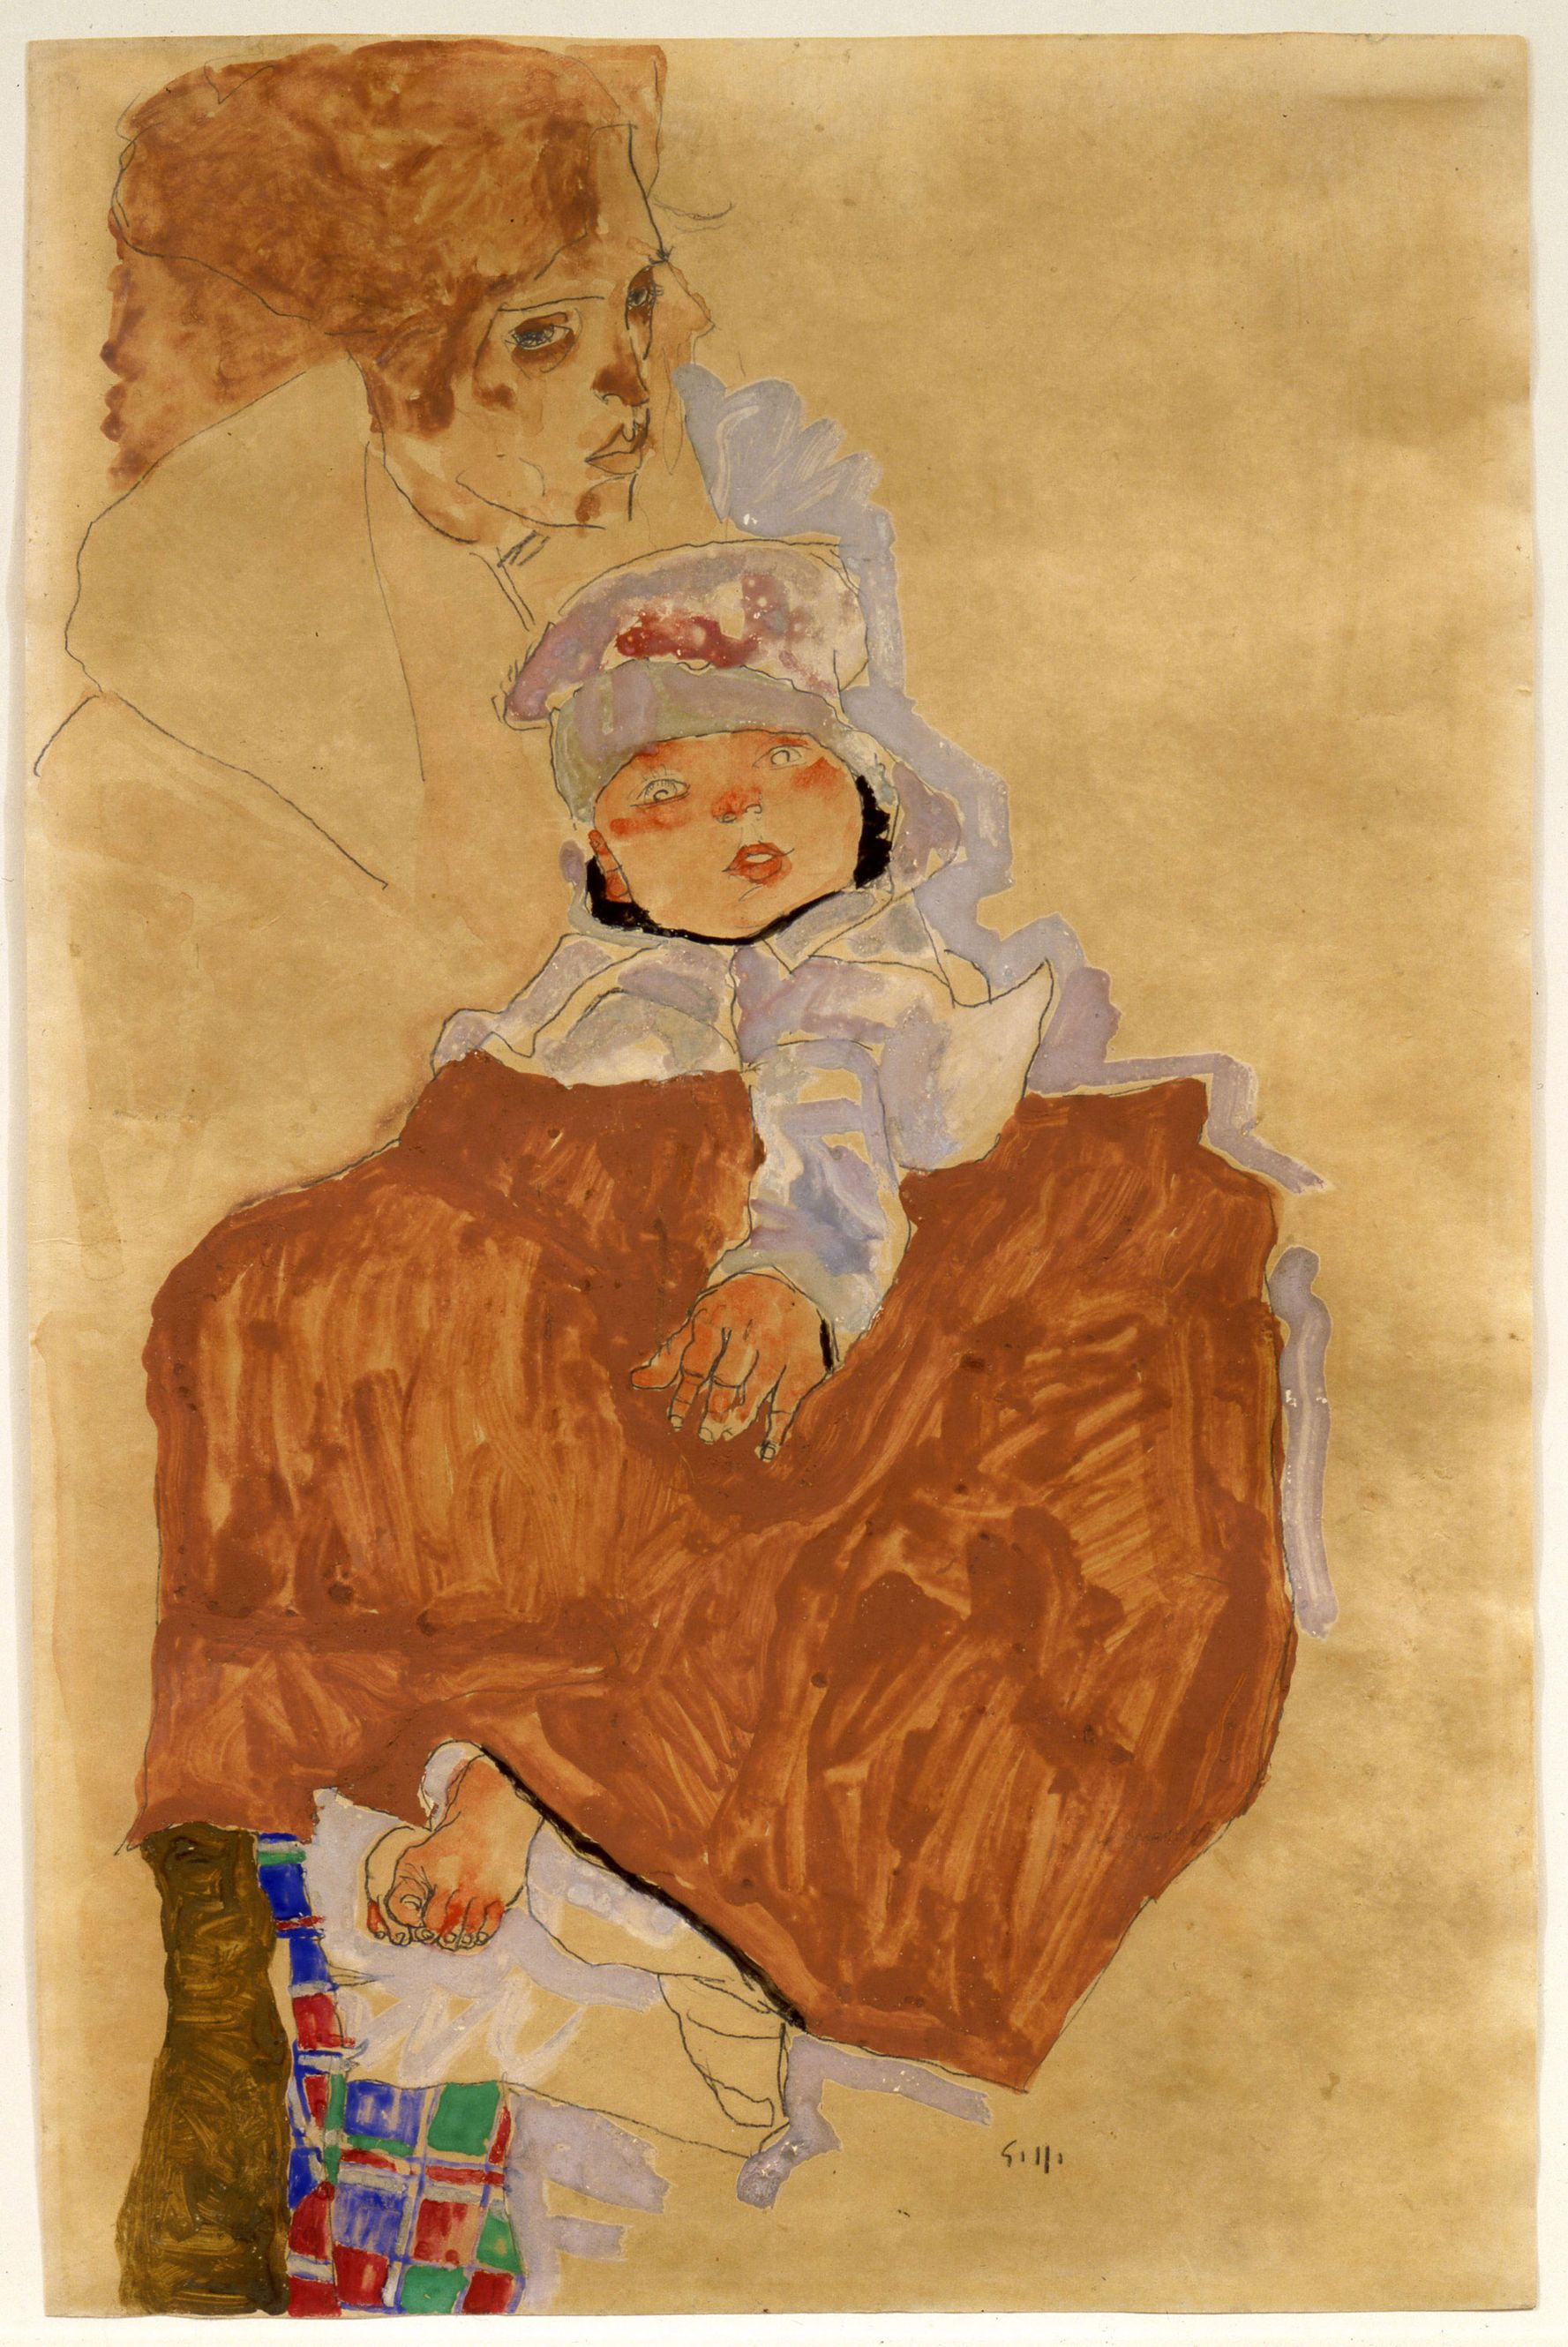 Photo 1 from Mother and Child,Egon Schiele.